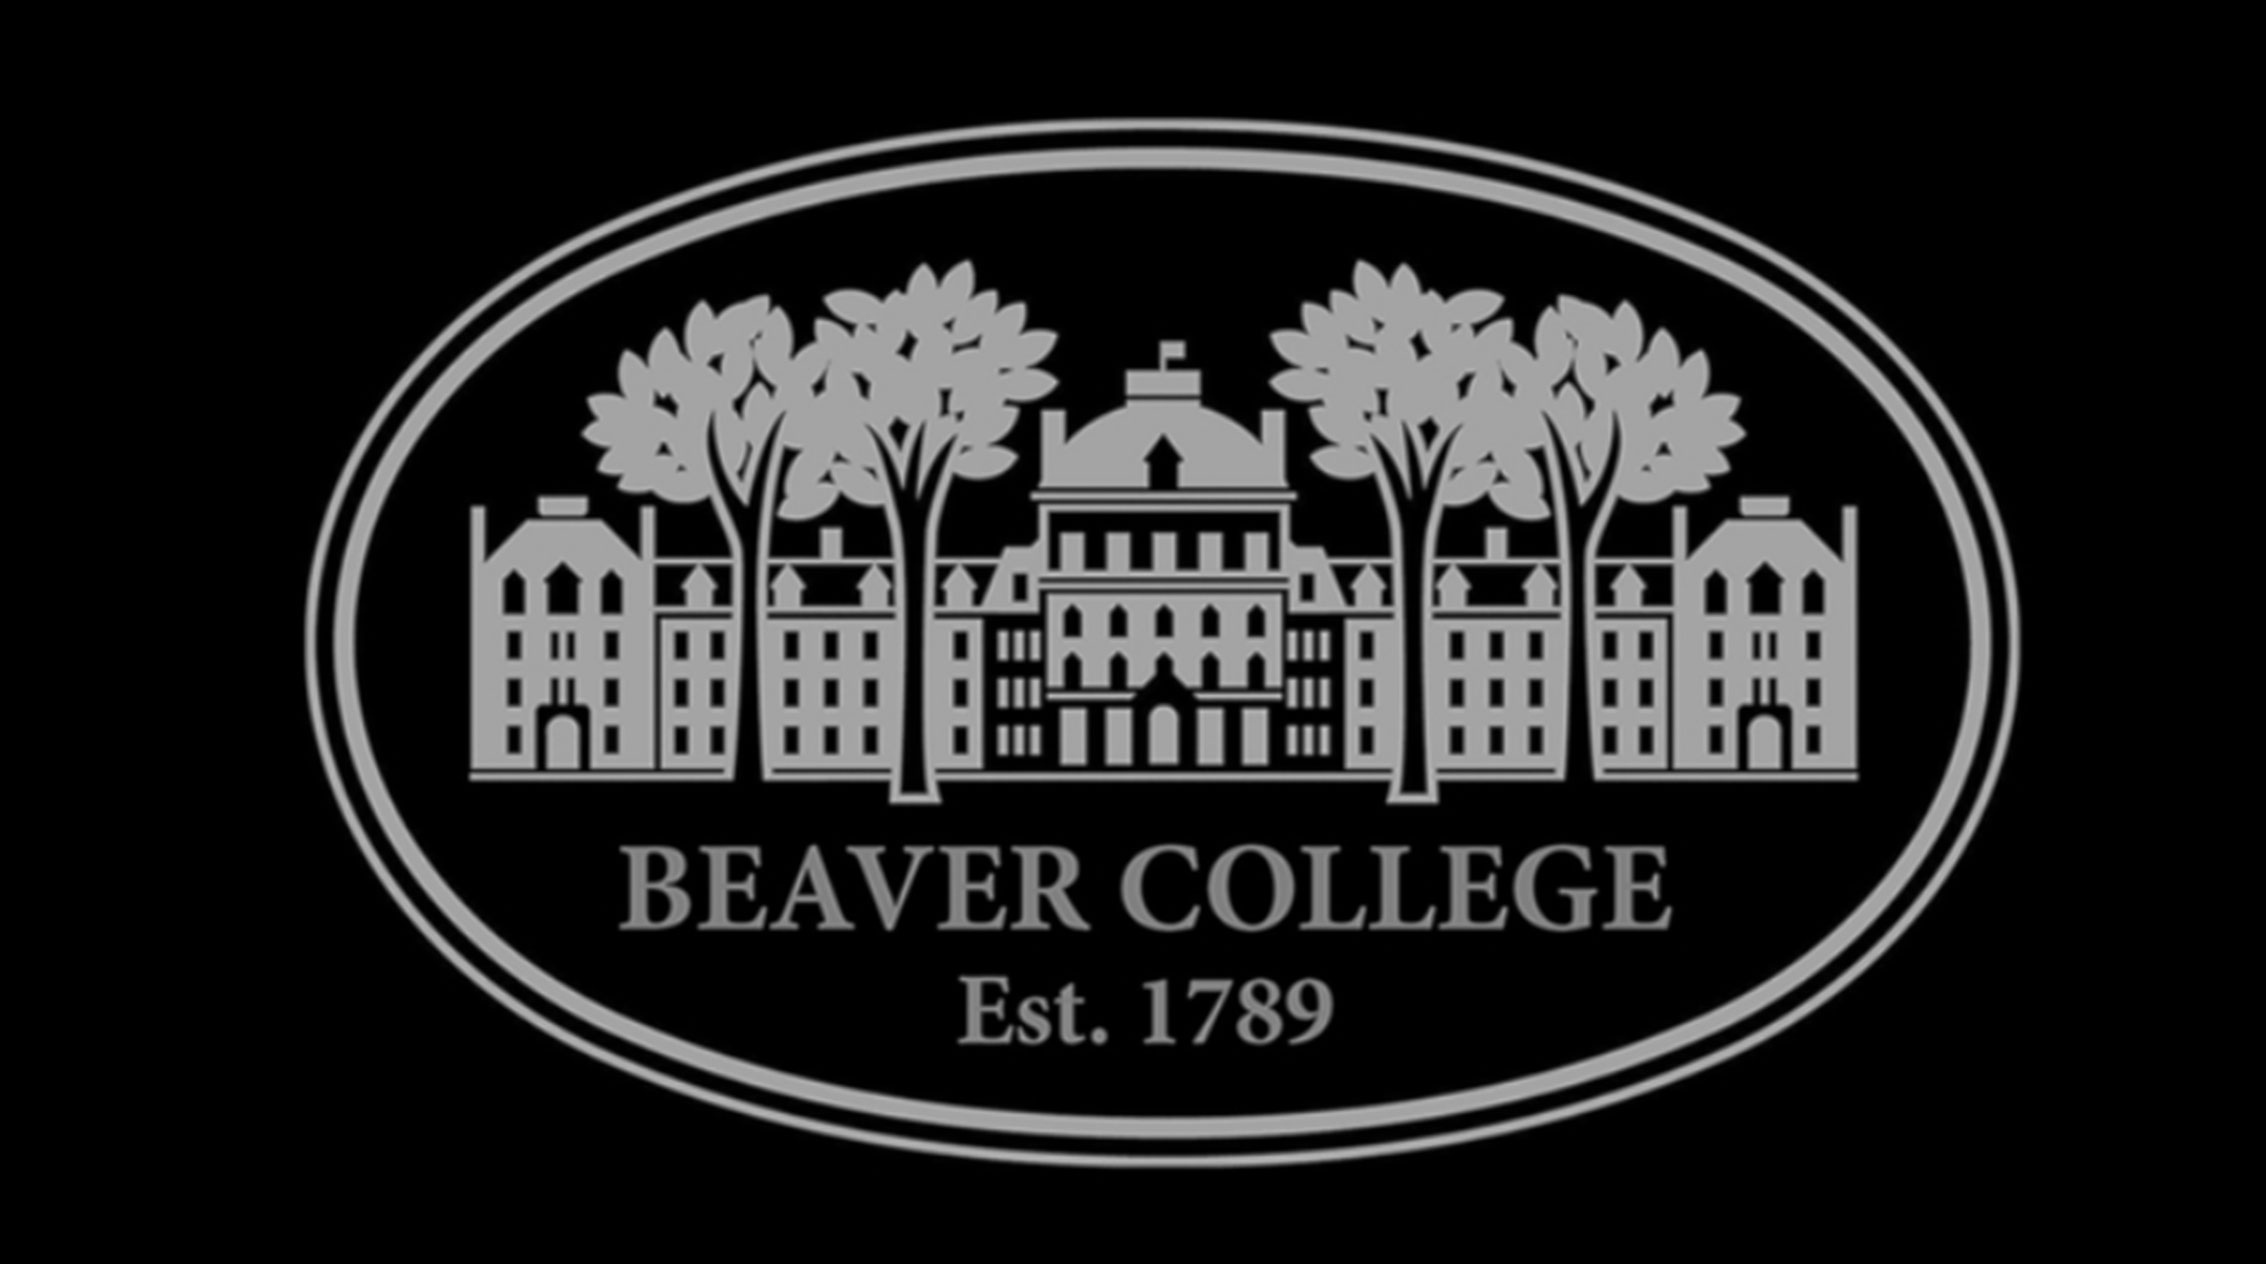 Beaver College is where Roy teaches a course in cinematography. Roy's questionable behavior at Beaver College alienates him from both students and faculty.